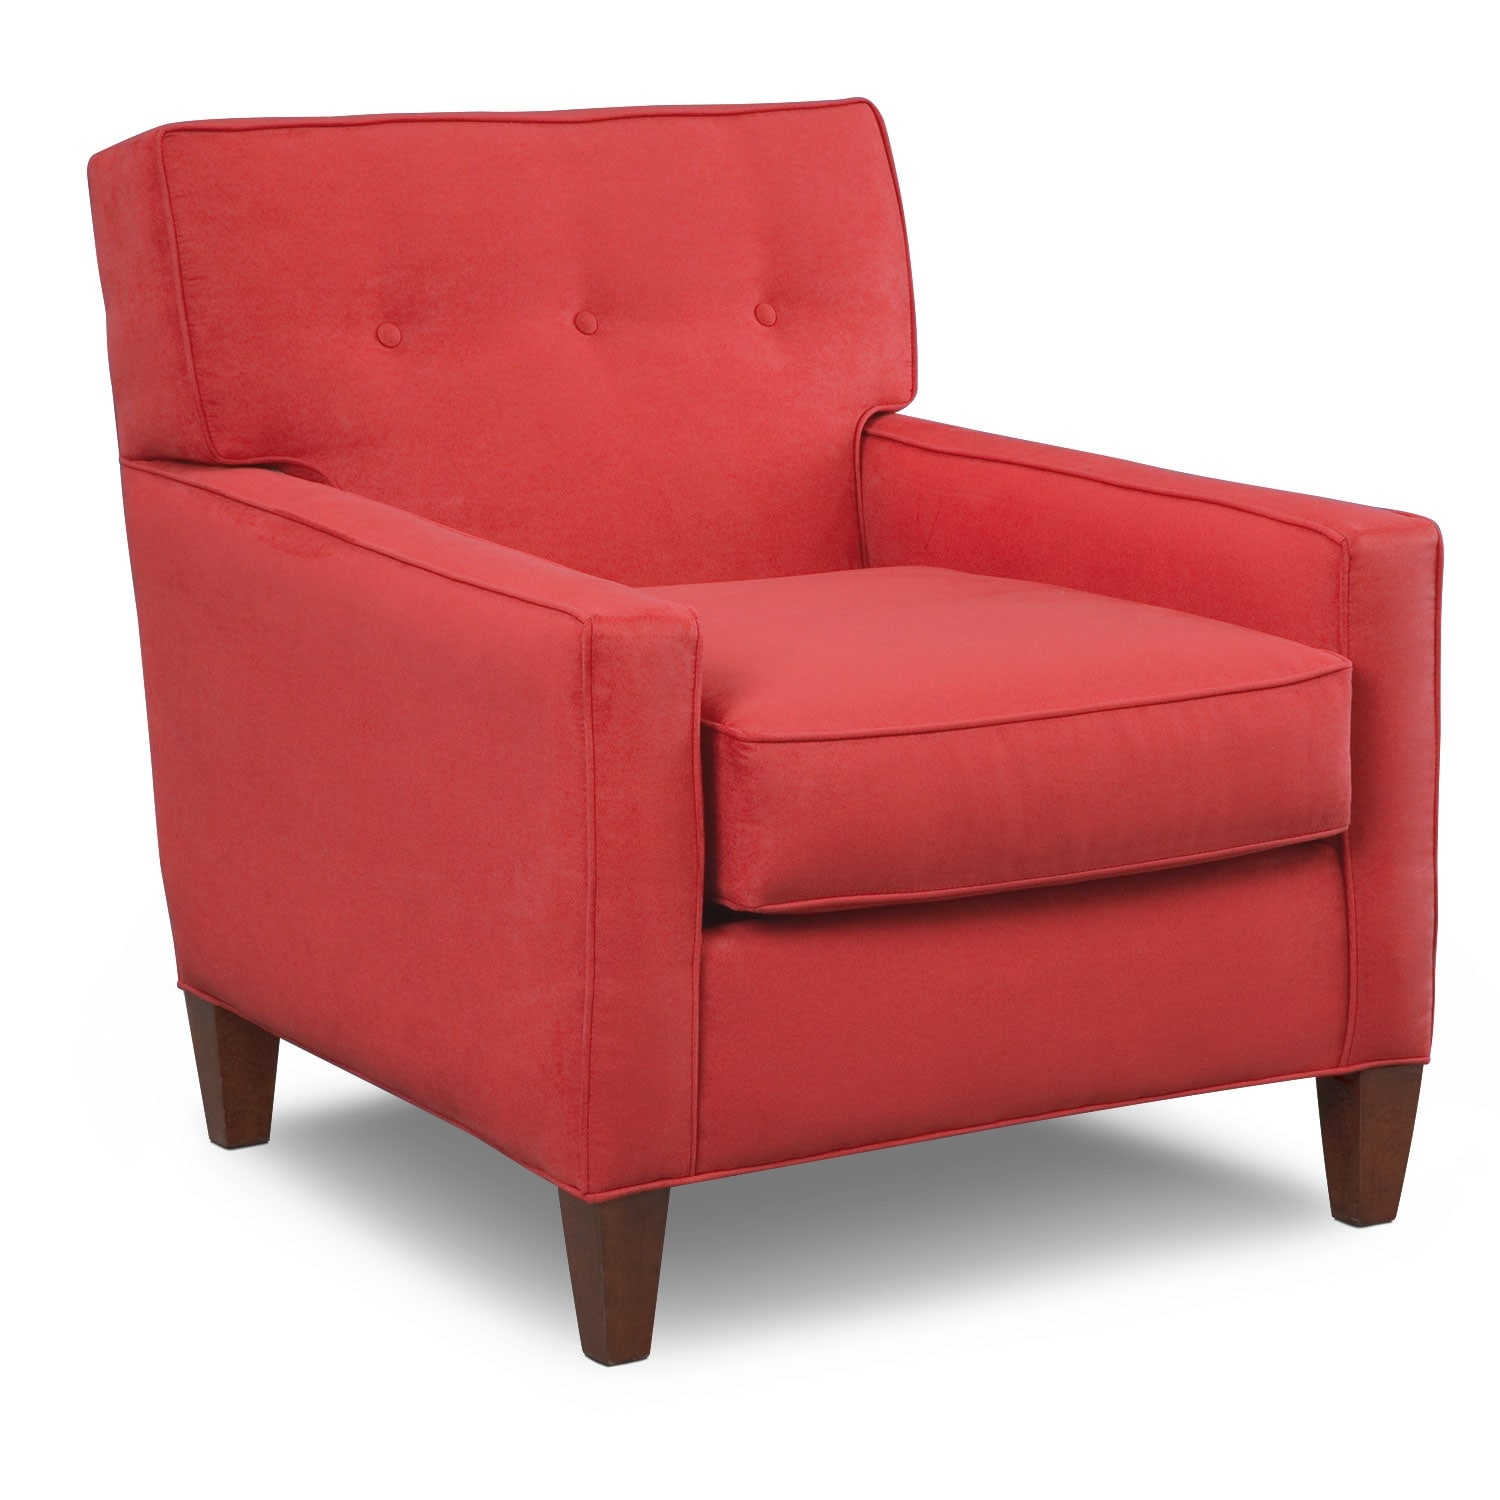 Hudson Red Upholstery Accent Chair  Furniturecom